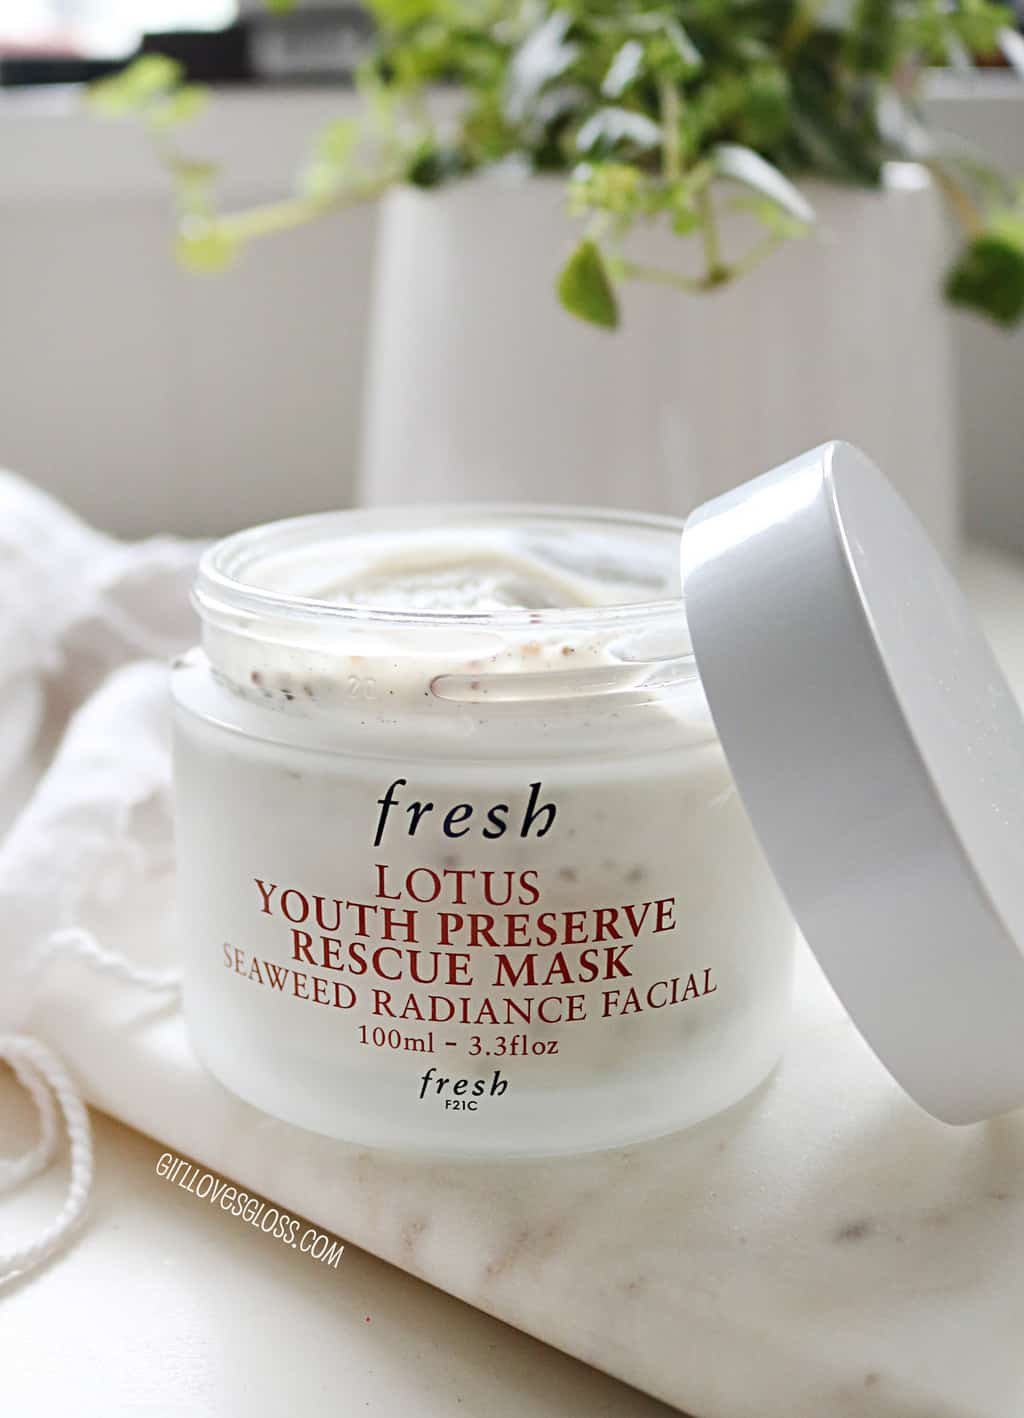 Fresh Lotus Youth Preserve Mask Review